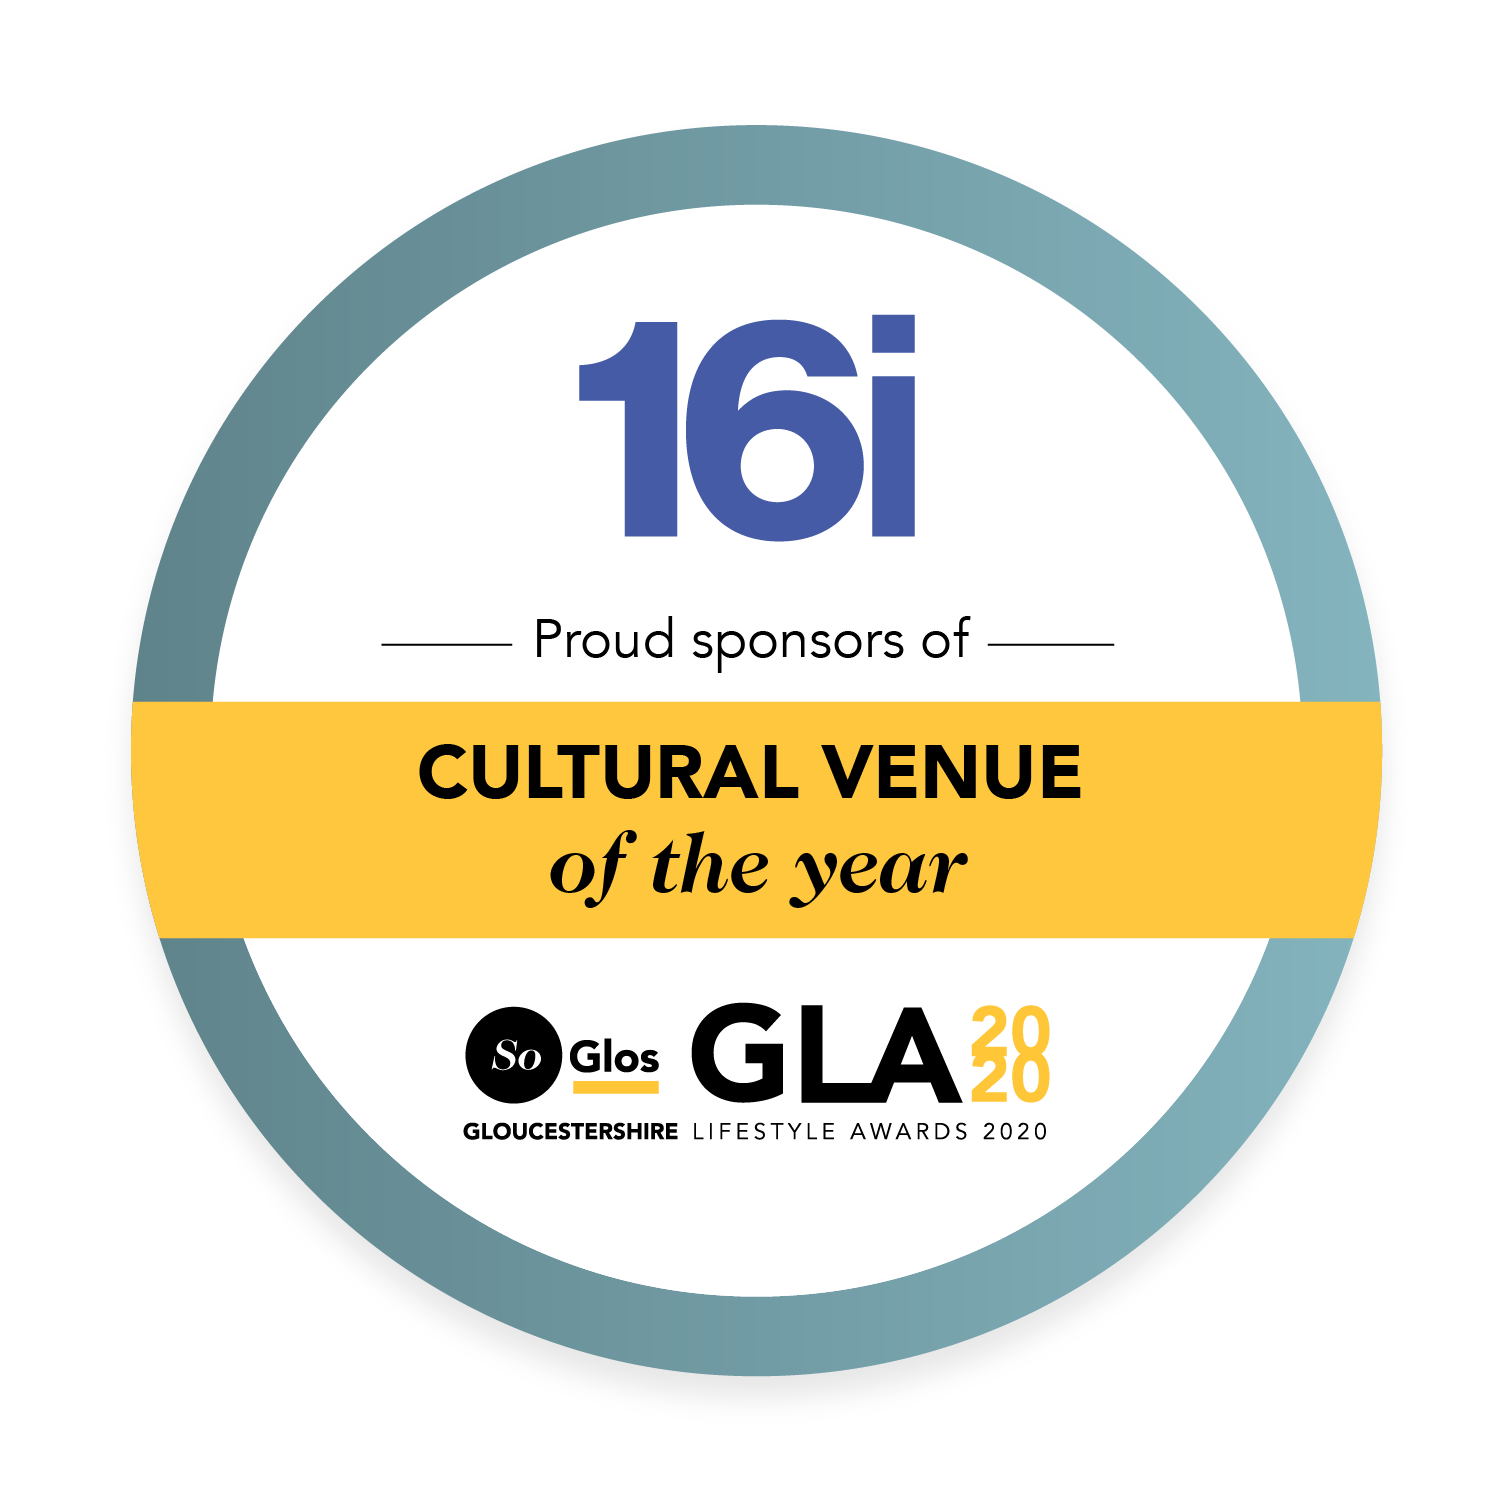 Cultural Venue of the Year